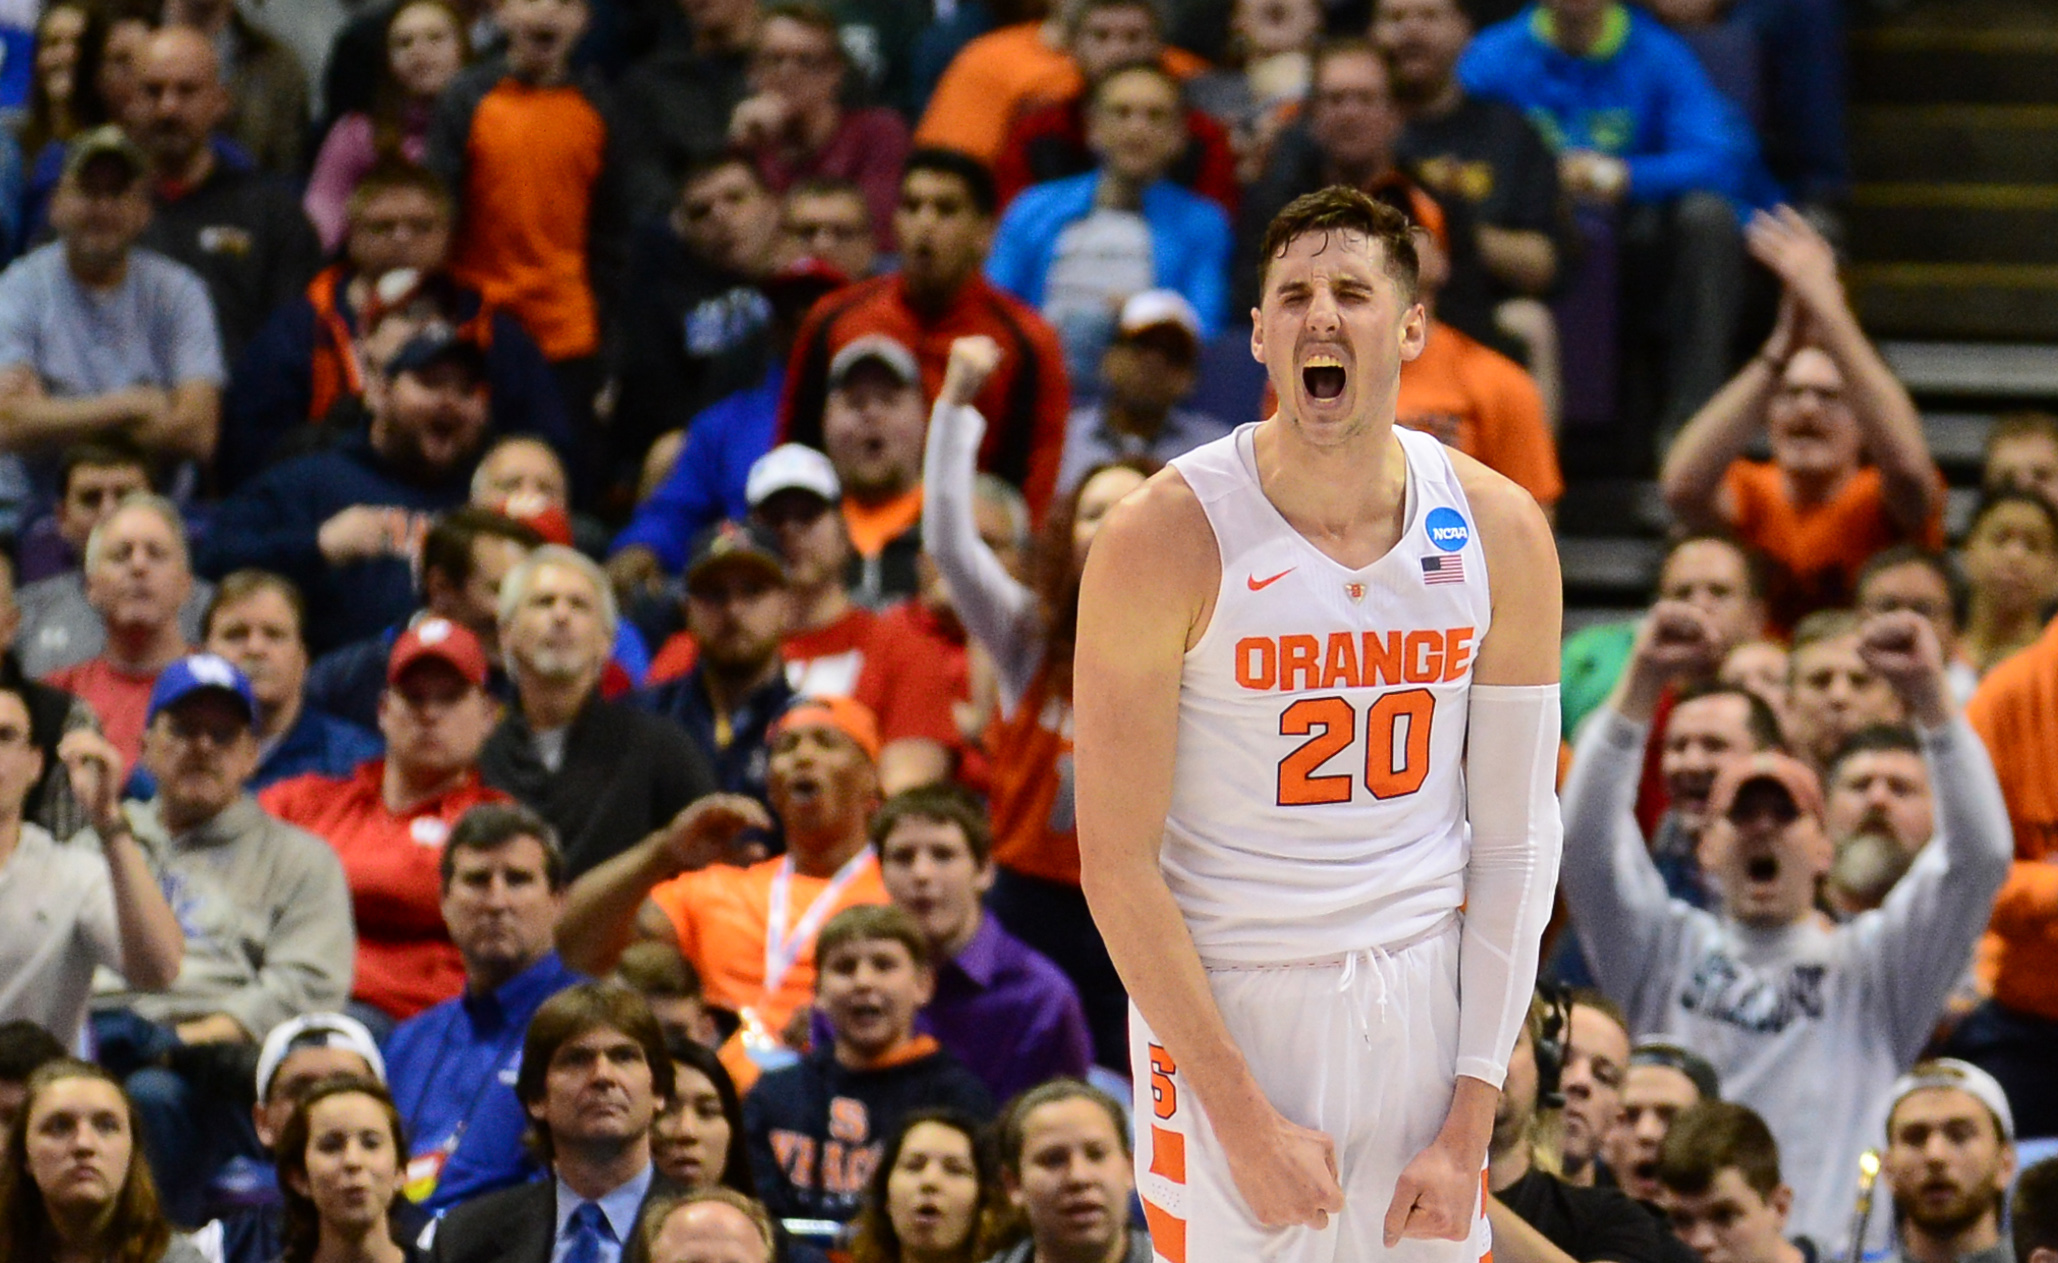 9201617-ncaa-basketball-ncaa-tournament-second-round-middle-tennessee-state-vs-syracuse